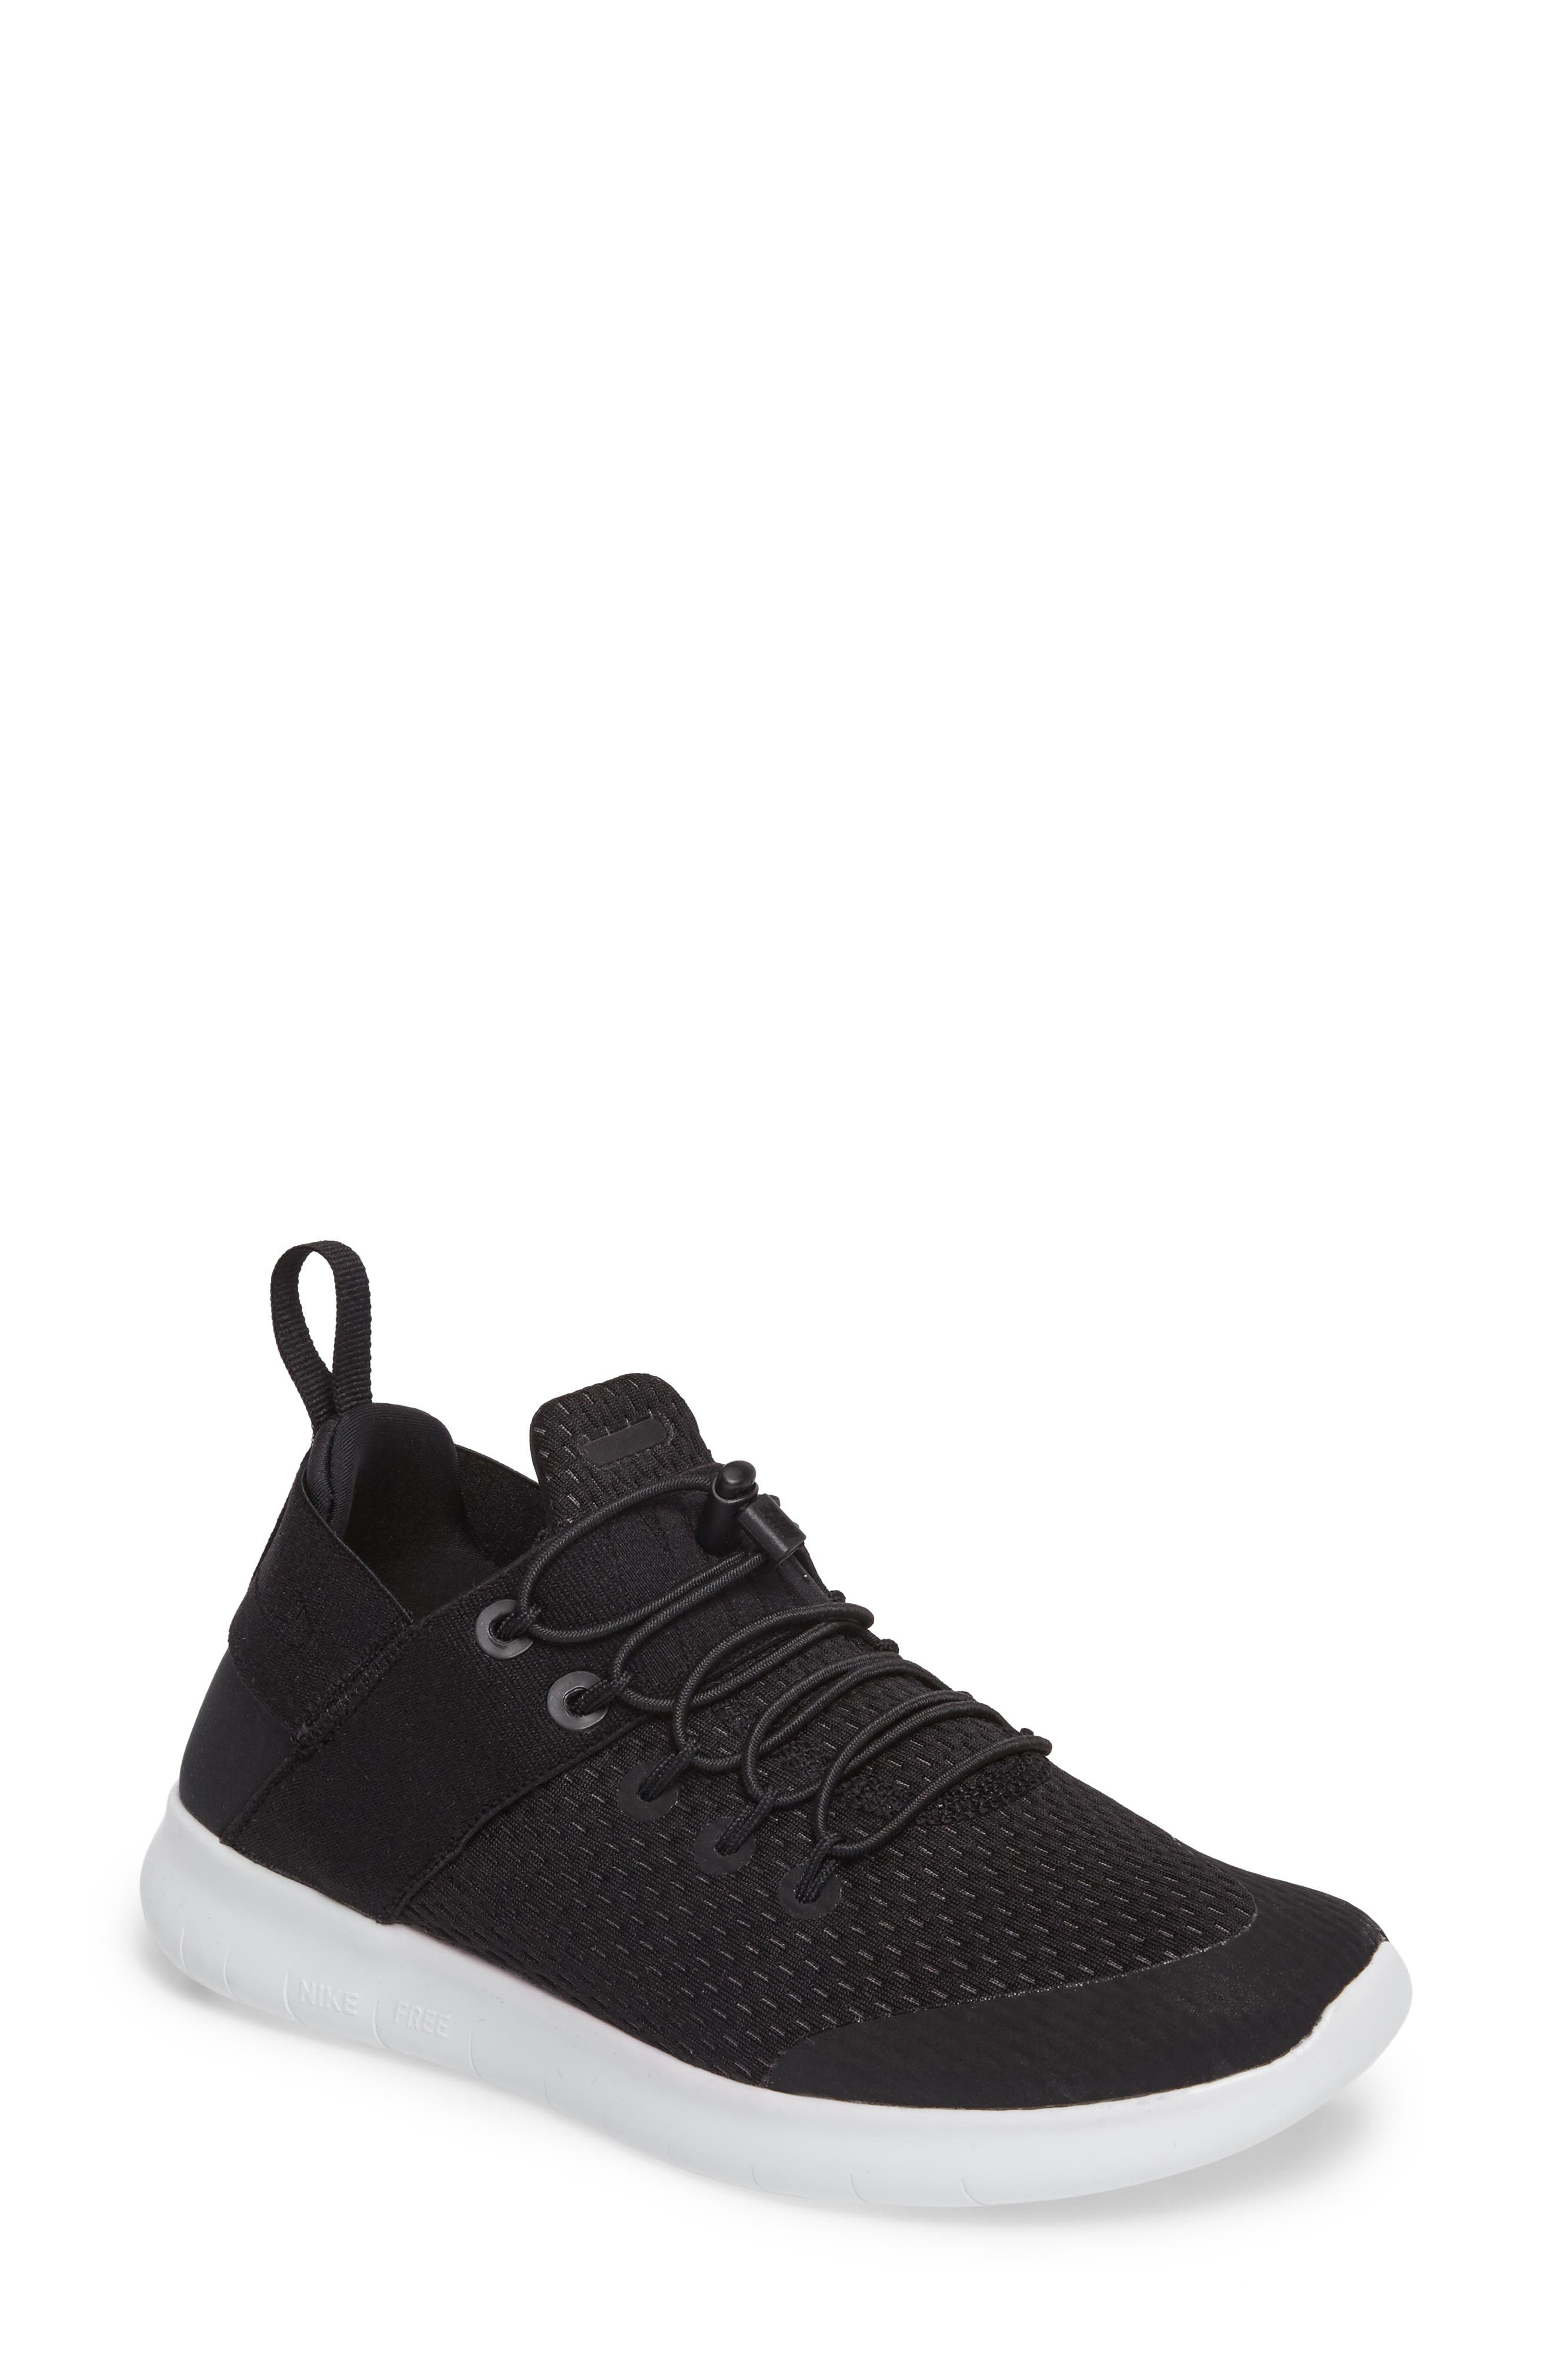 Free RN CMTR Running Shoe,                             Main thumbnail 1, color,                             Black/ Anthracite/ Off White